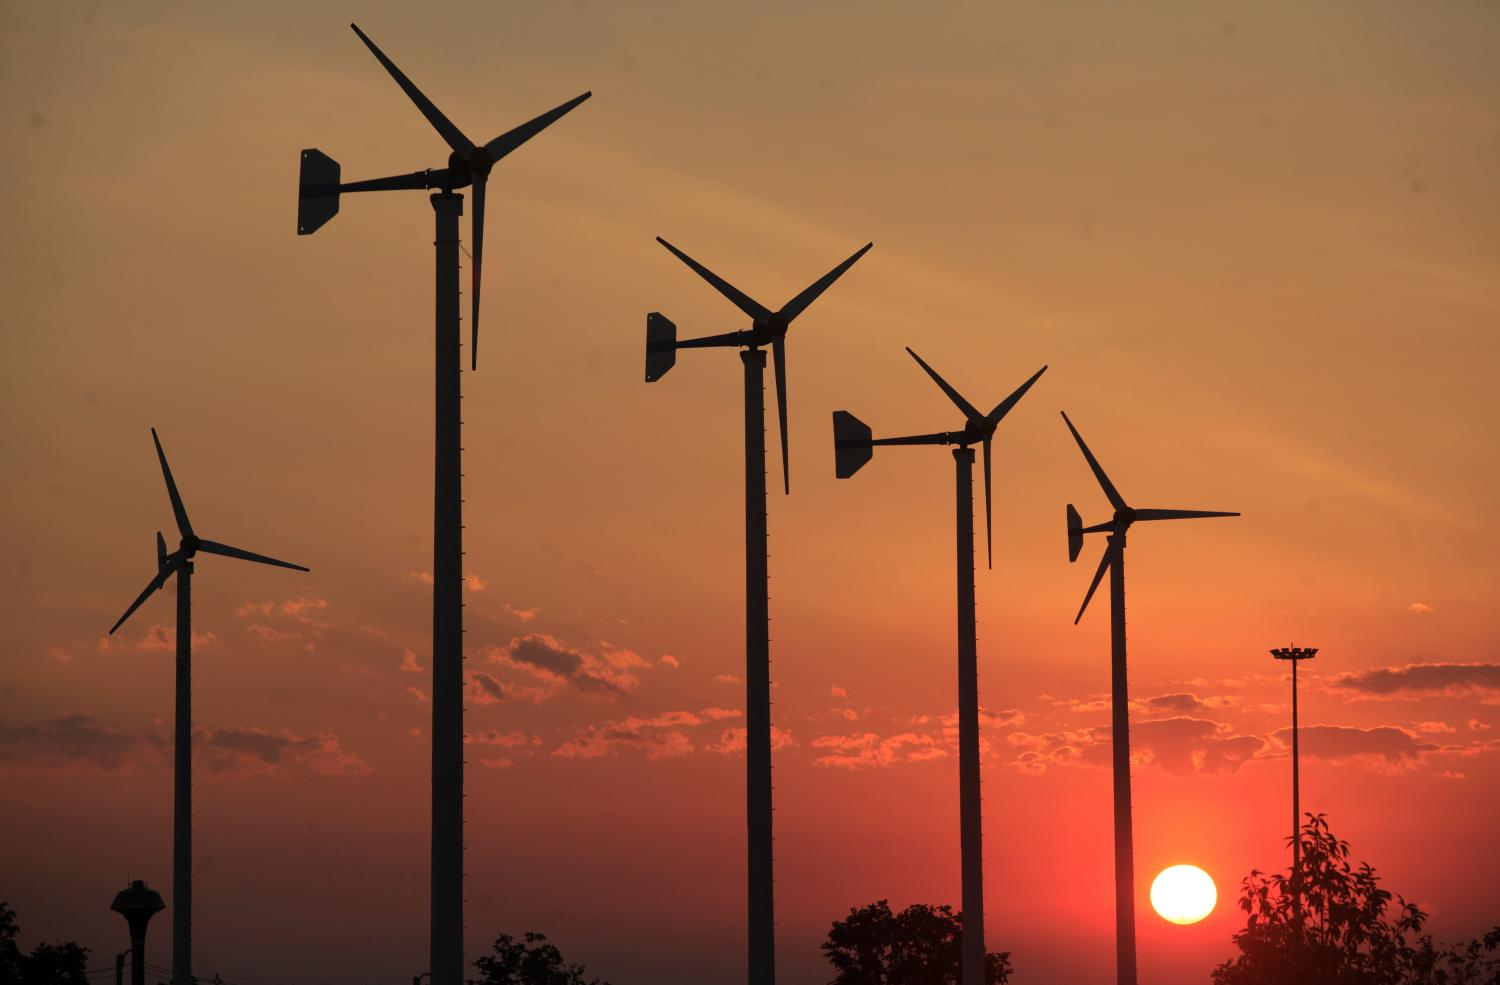 Thailand's Gulf to acquire two Vietnamese wind farms